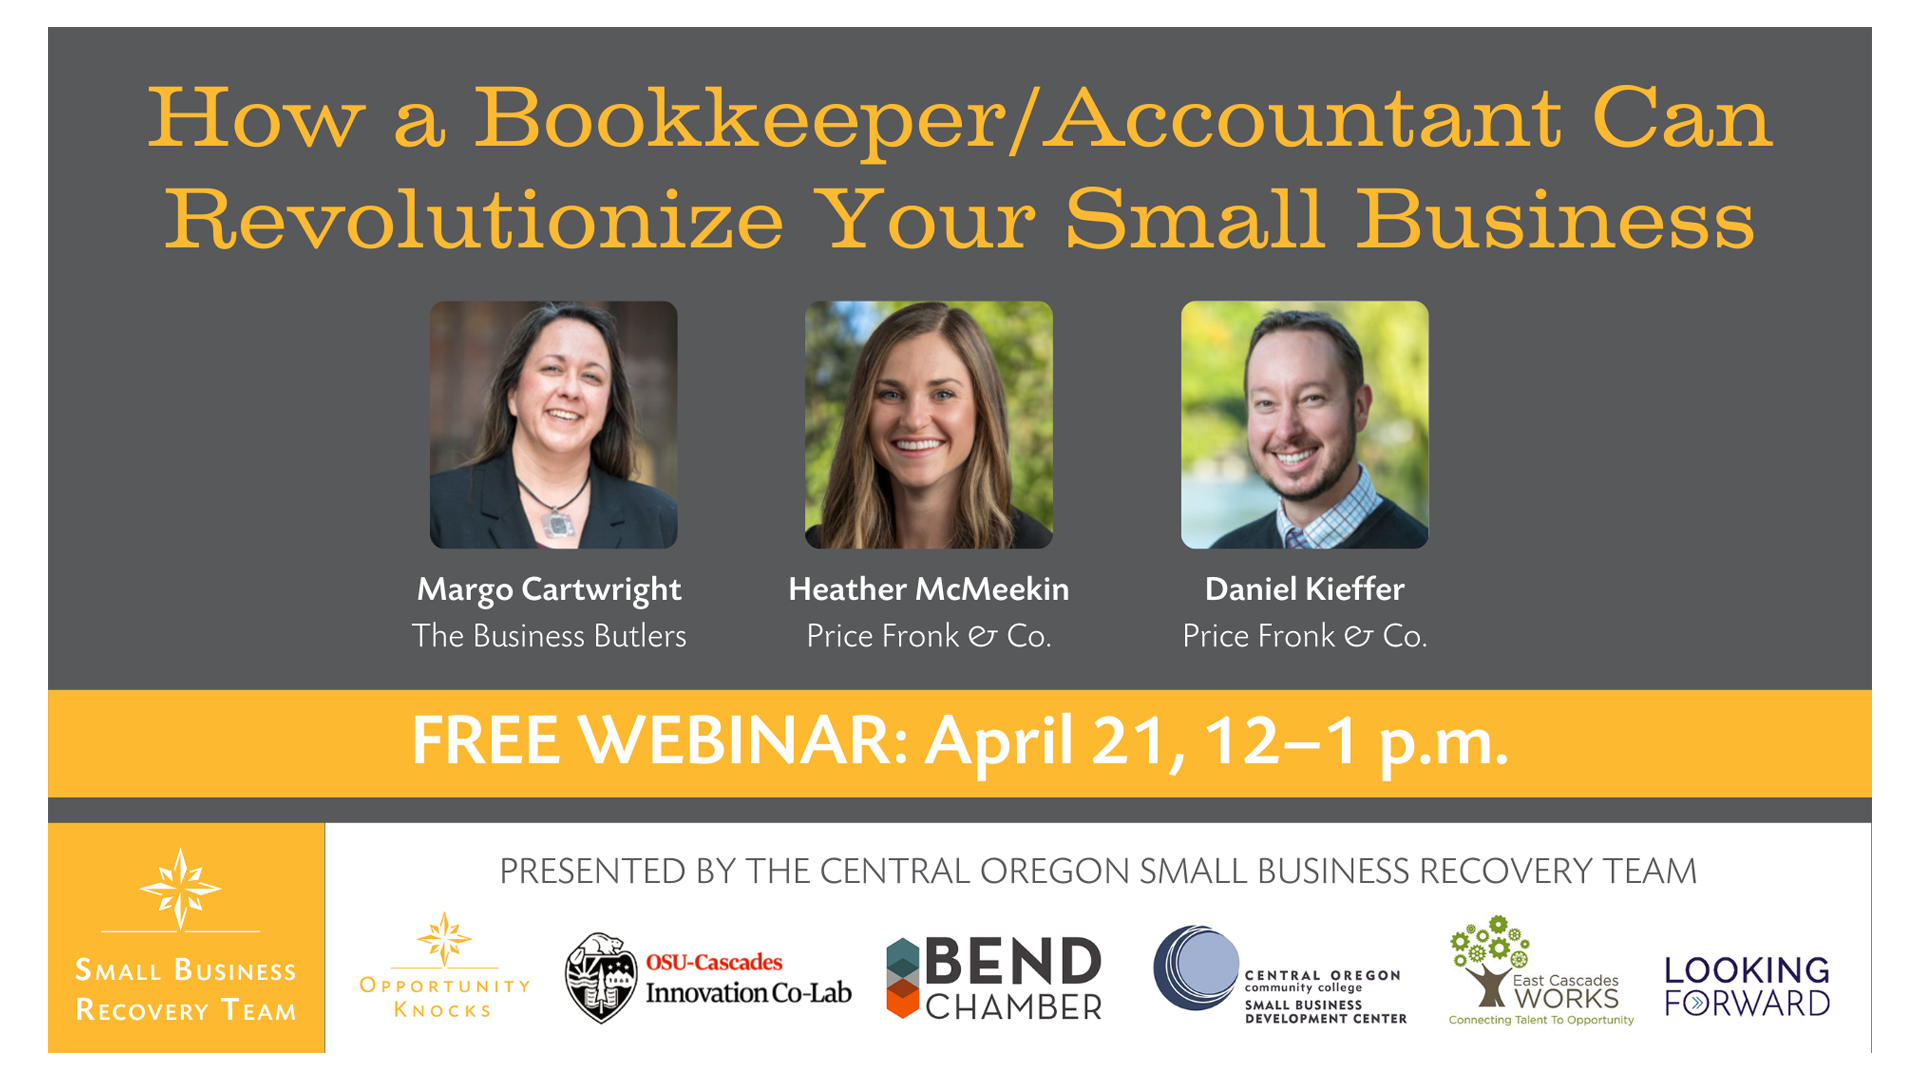 How a Bookkeeper/Accountant Can Revolutionize Your Small Business